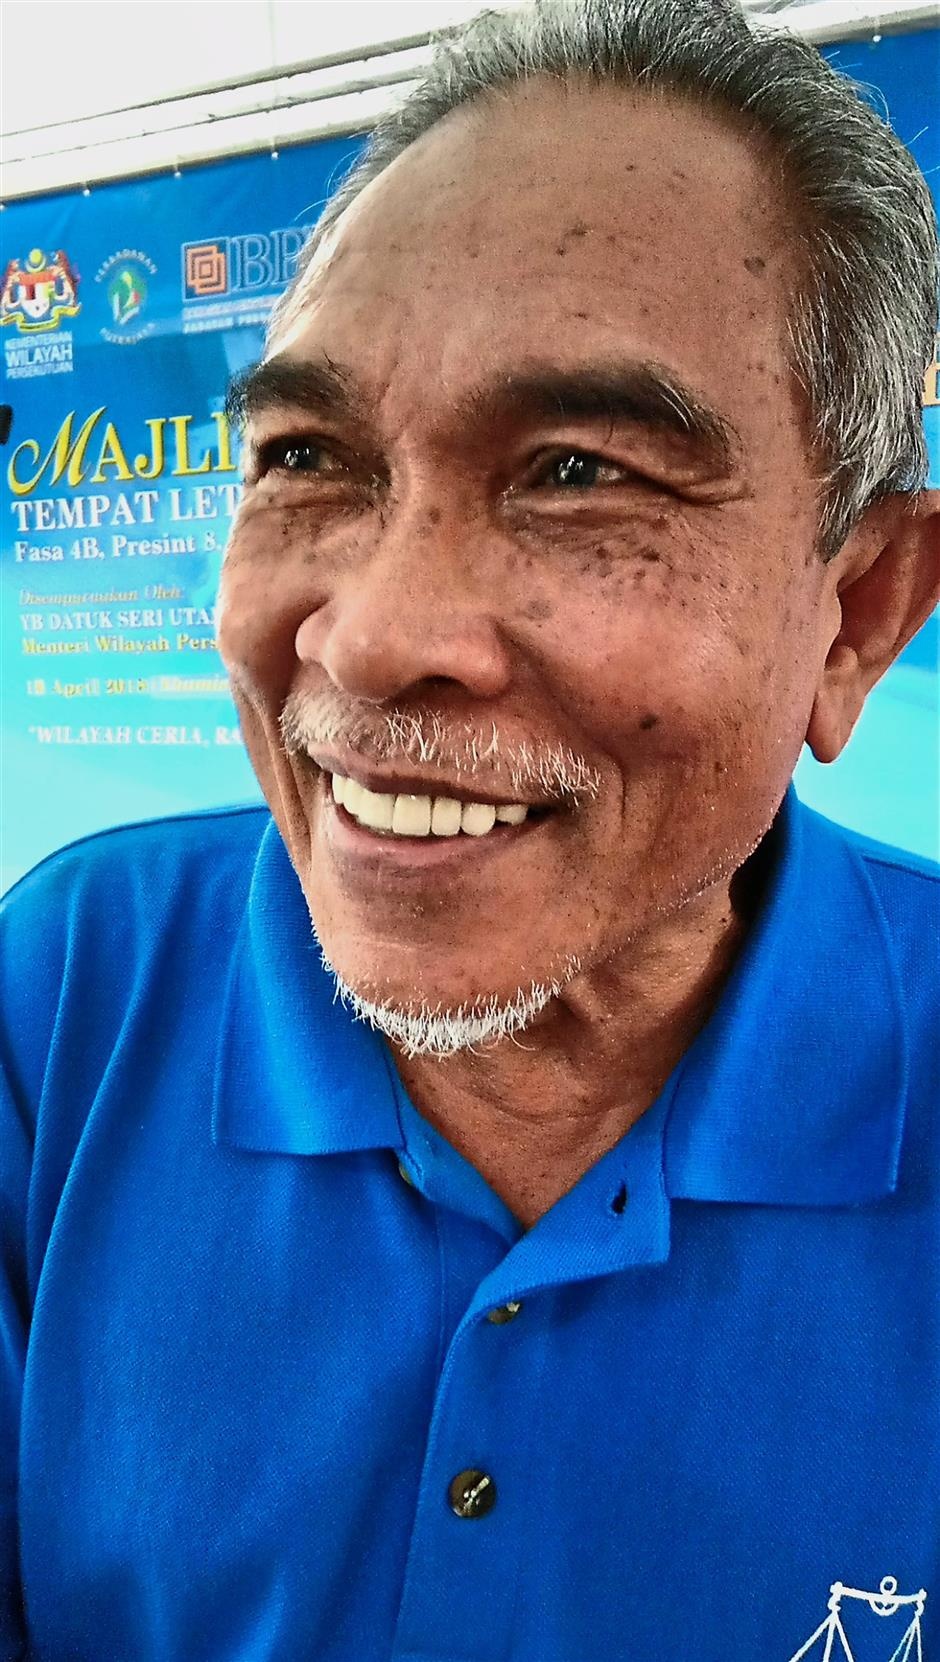 Nordin says it is good for the authorities to implement security measures like an access card system once the multi-level carpark is completed.